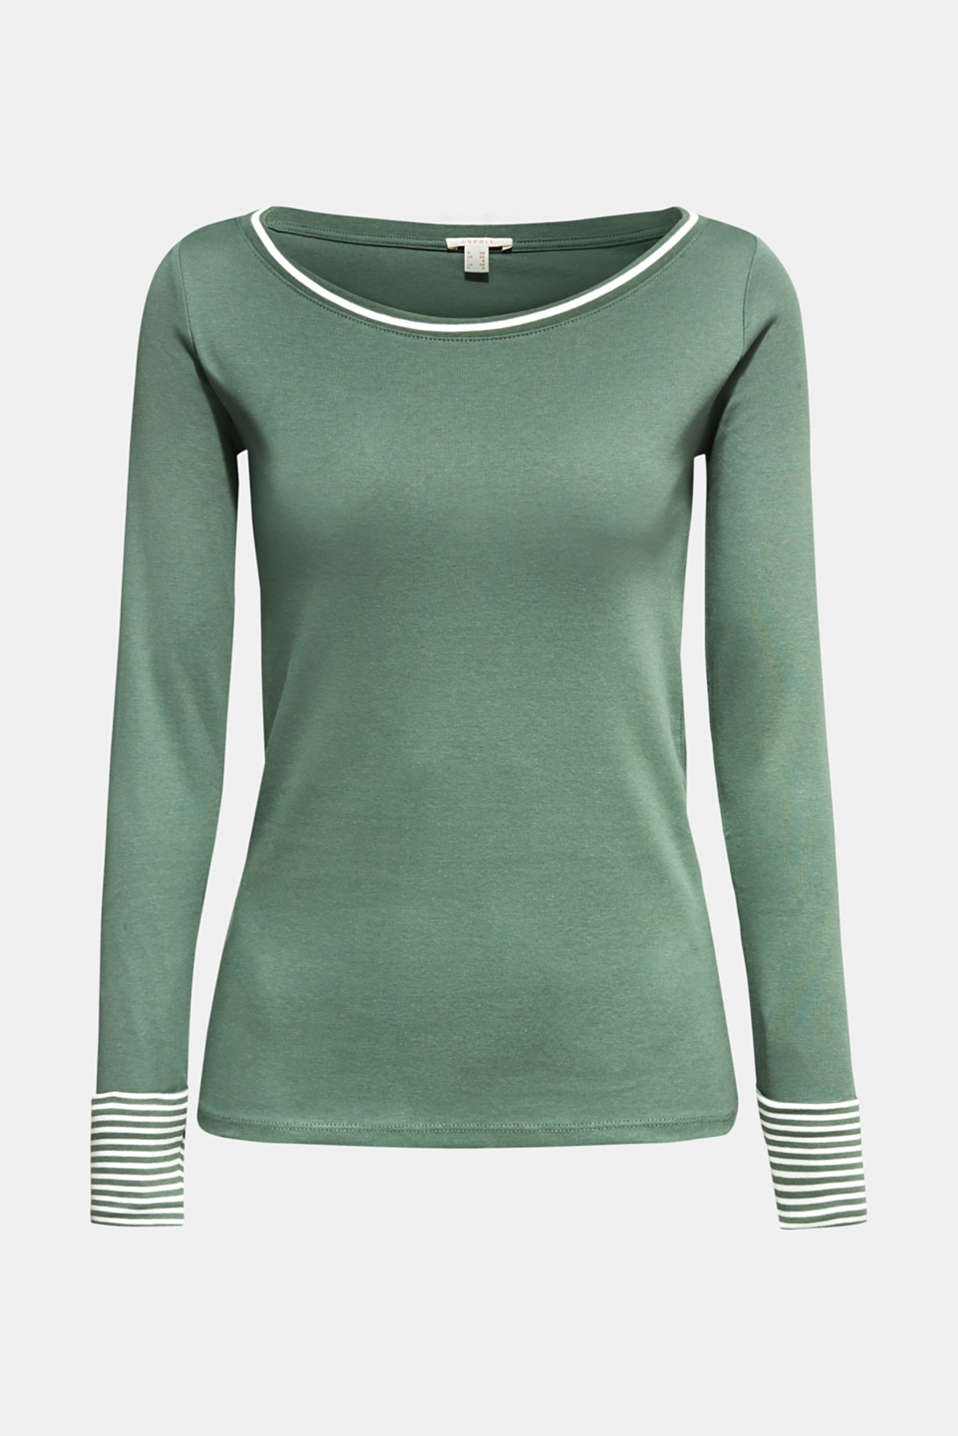 Top with striped details, 100% cotton, KHAKI GREEN 4, detail image number 5